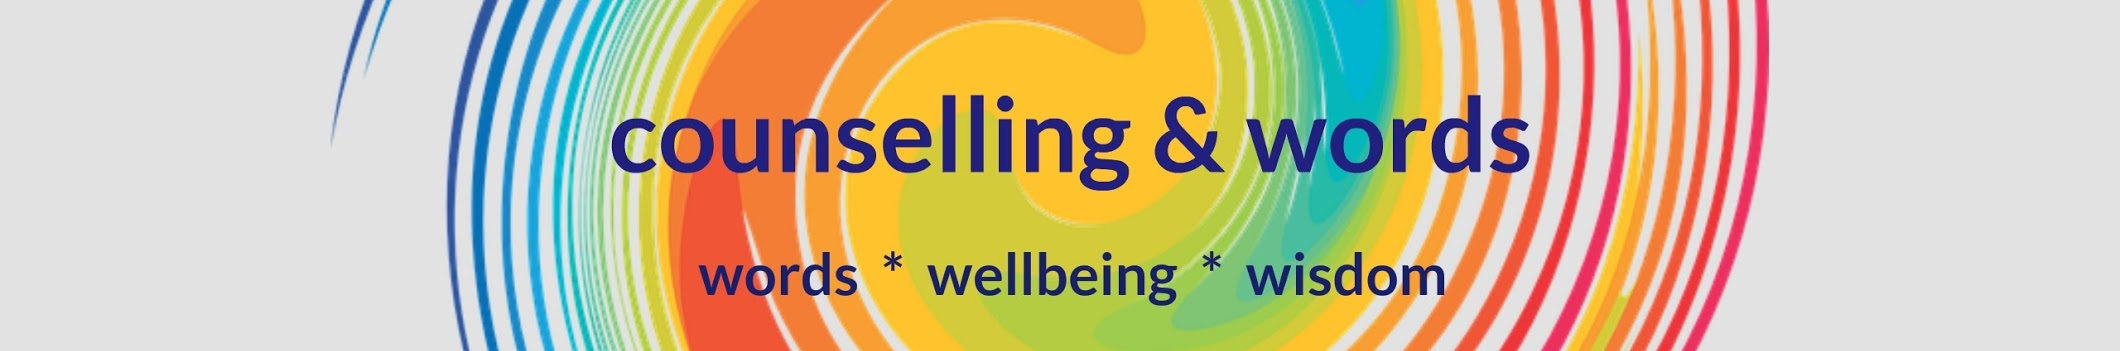 Counselling and Words – Words, Wellbeing, Wisdom